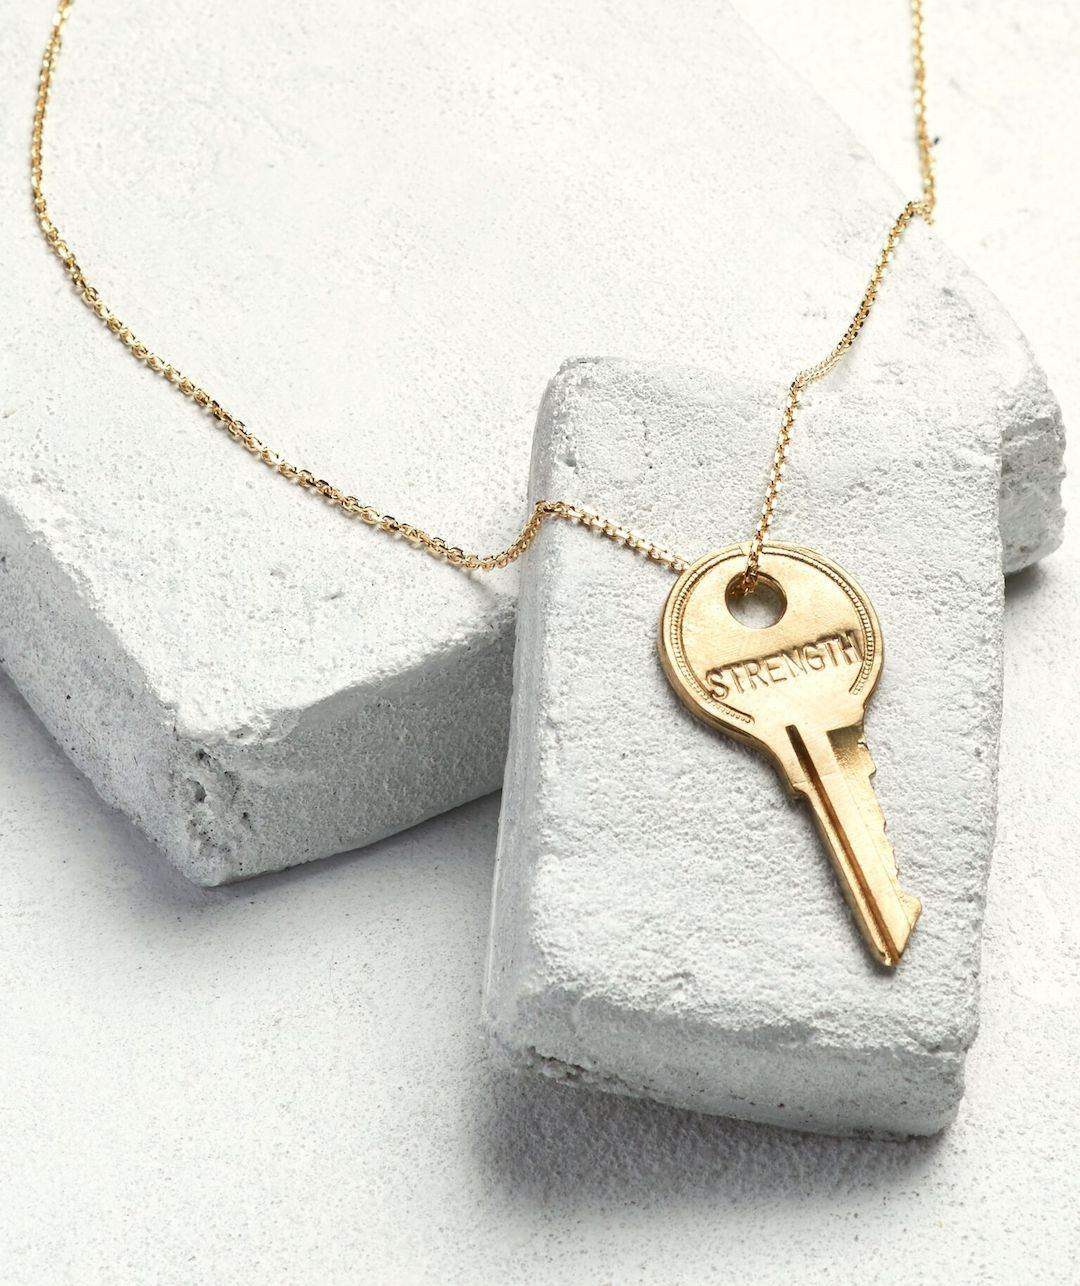 Dainty Key Necklace Necklaces The Giving Keys STRENGTH Dainty Gold